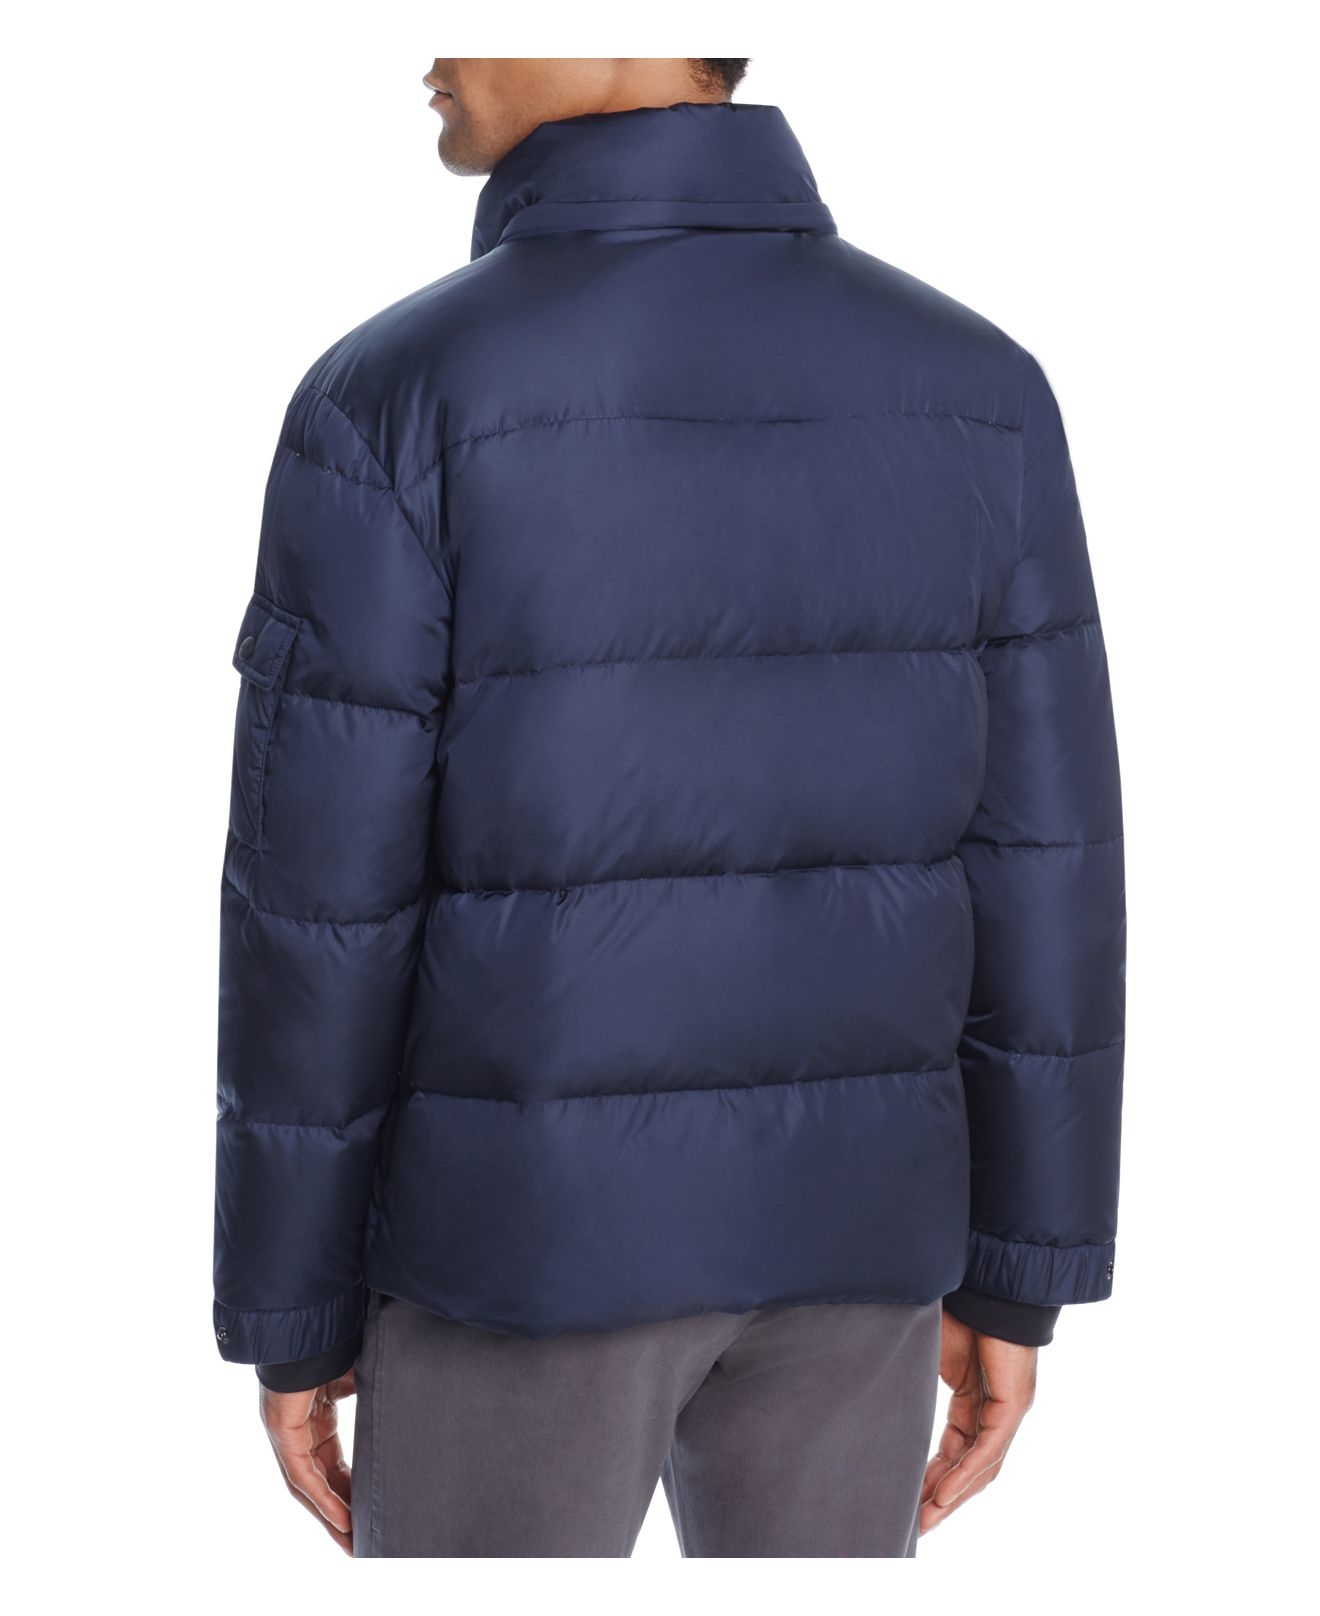 Sam. Goose Commander Down Jacket in Navy (Blue) for Men